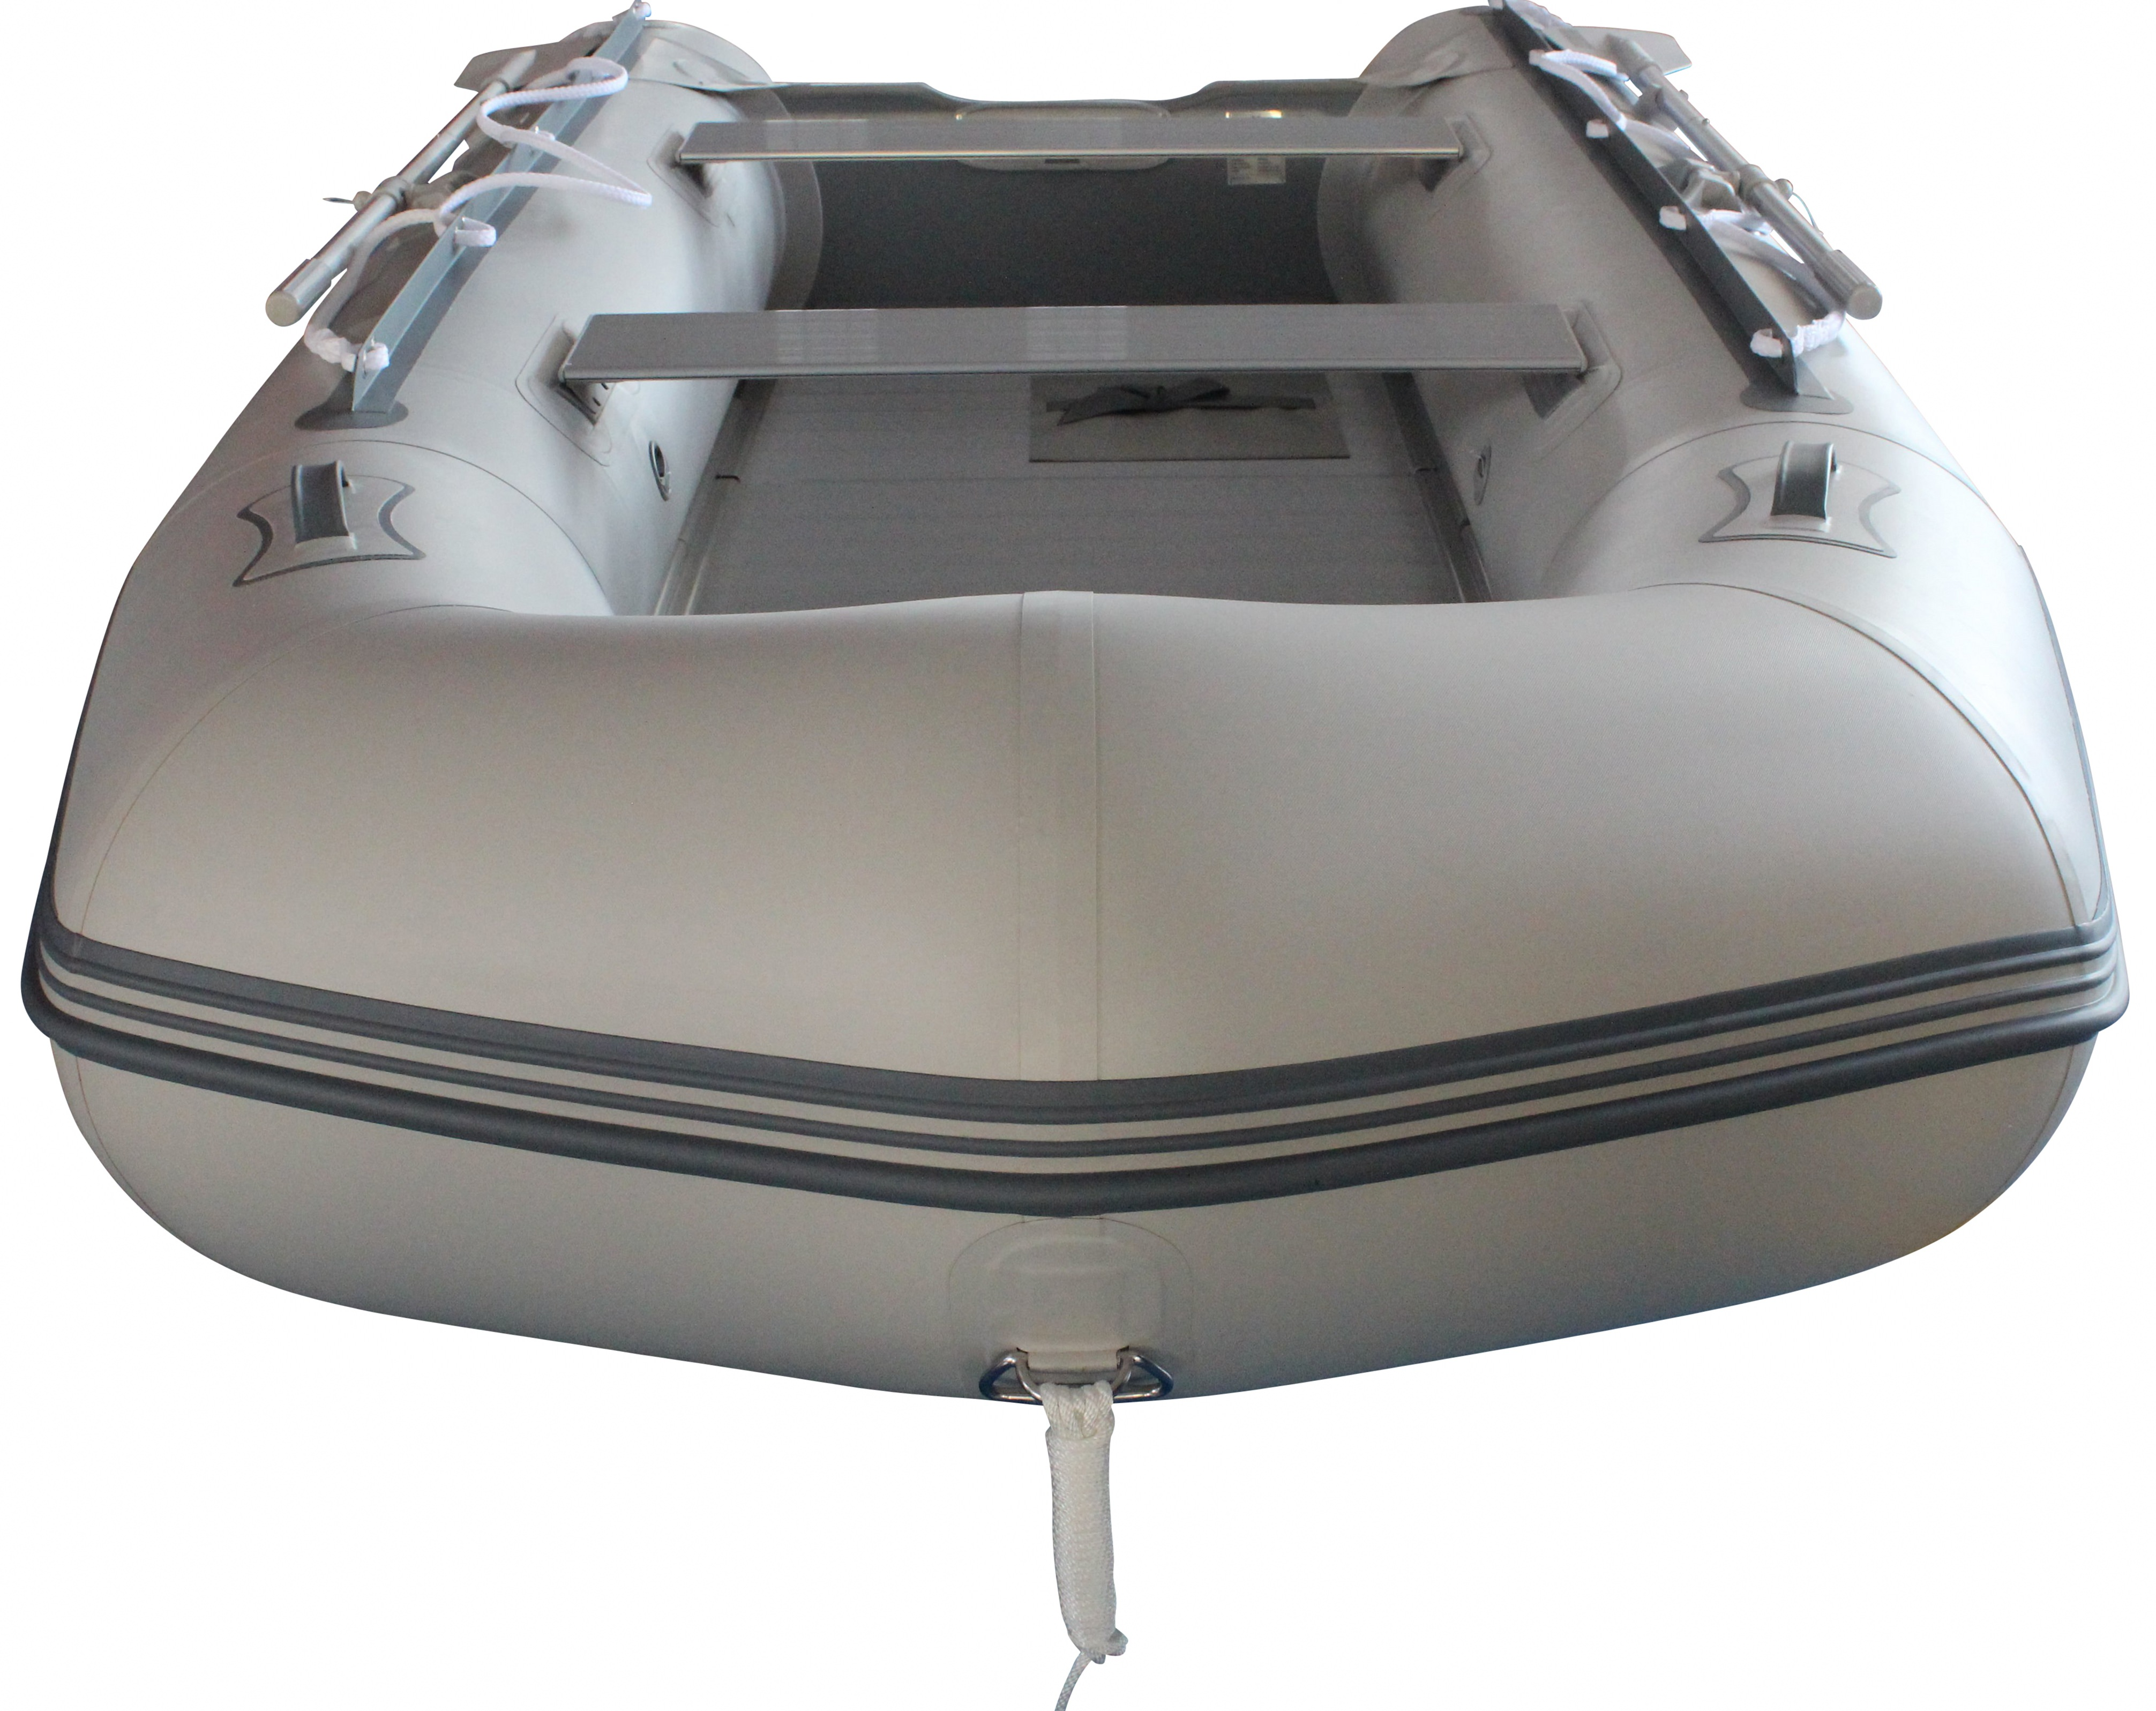 12.5' Budget Boat by Saturn - Grey Front View